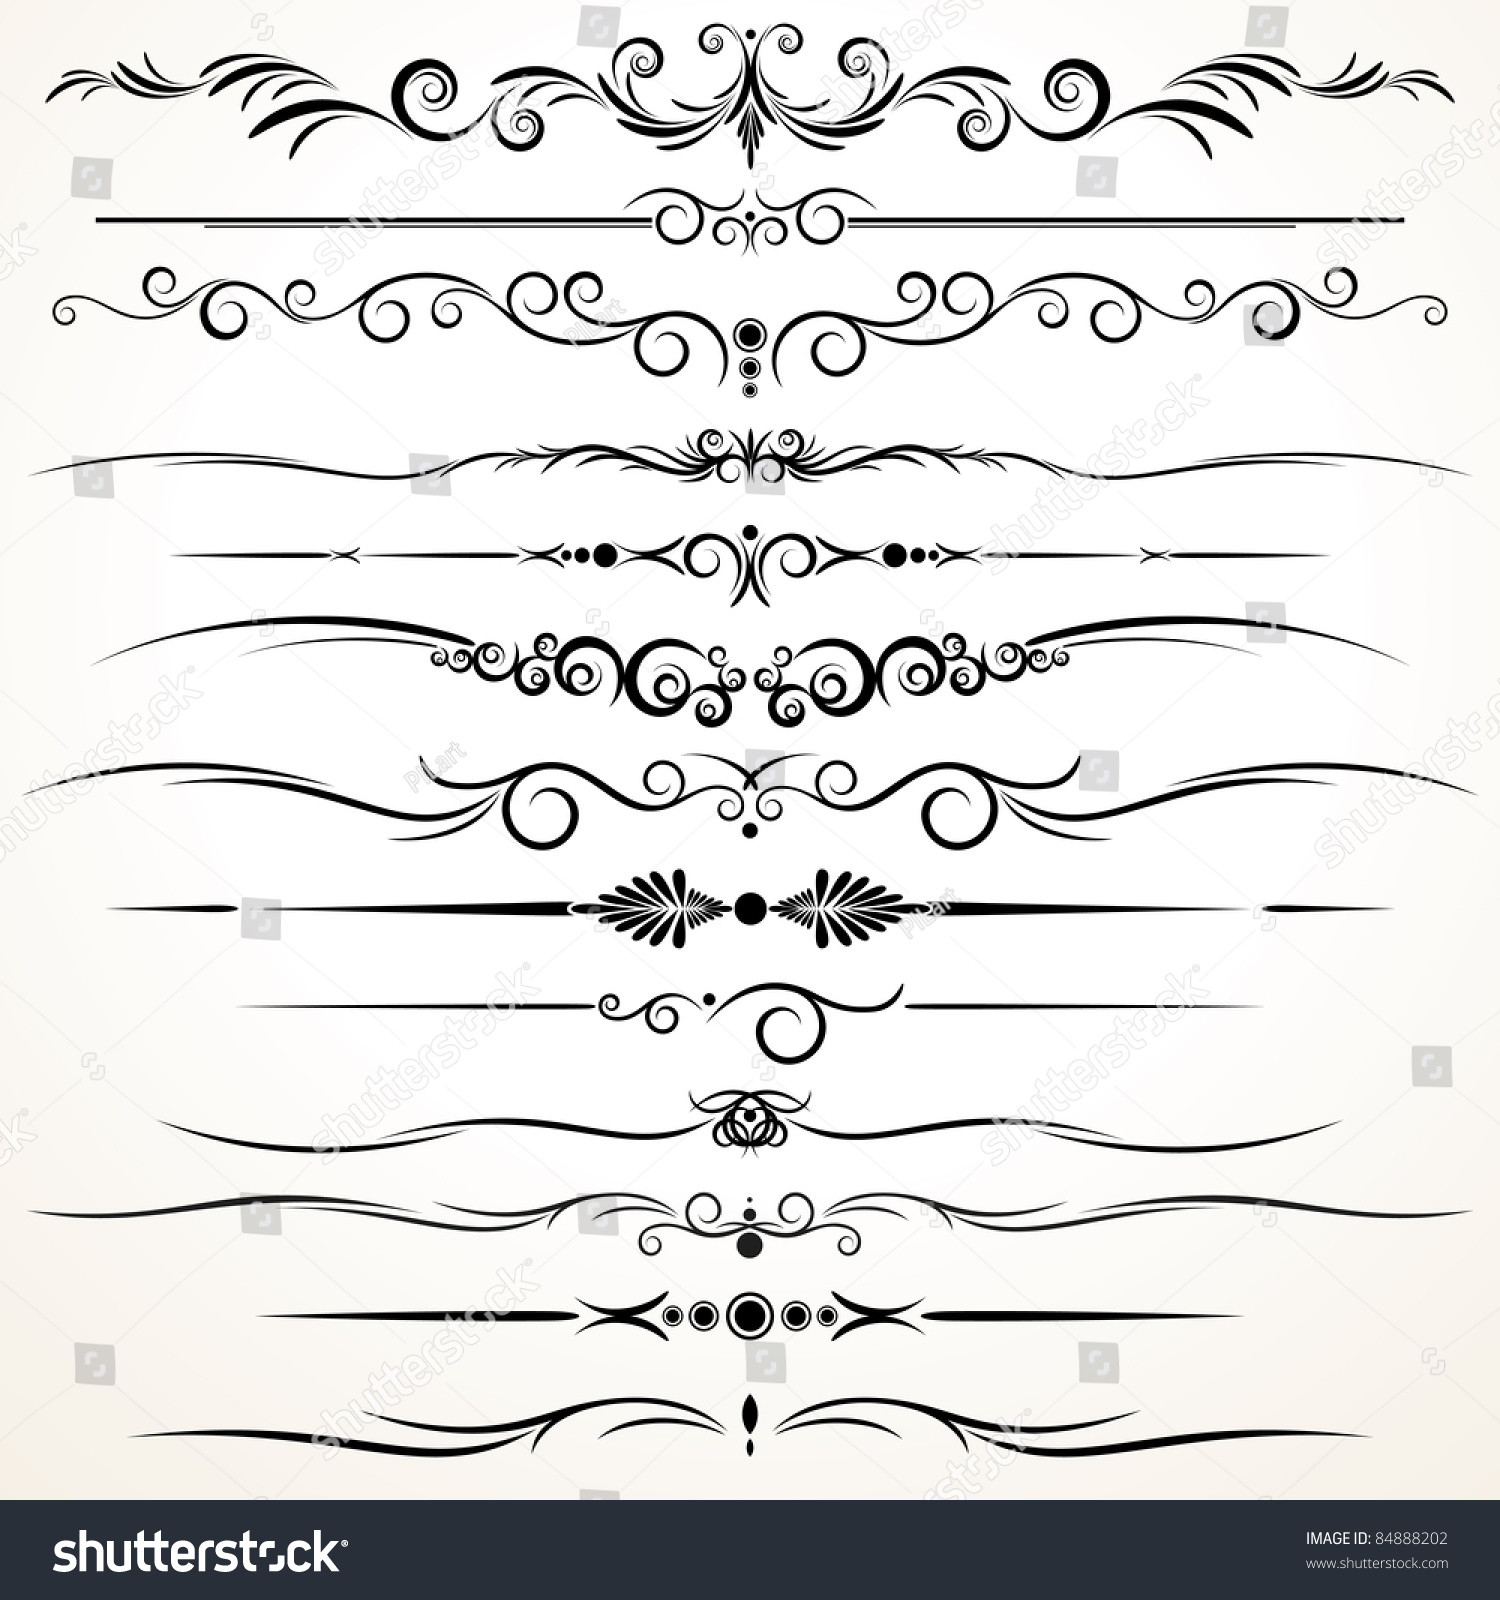 Line Art Styles : Collection of ornamental rule lines in different design